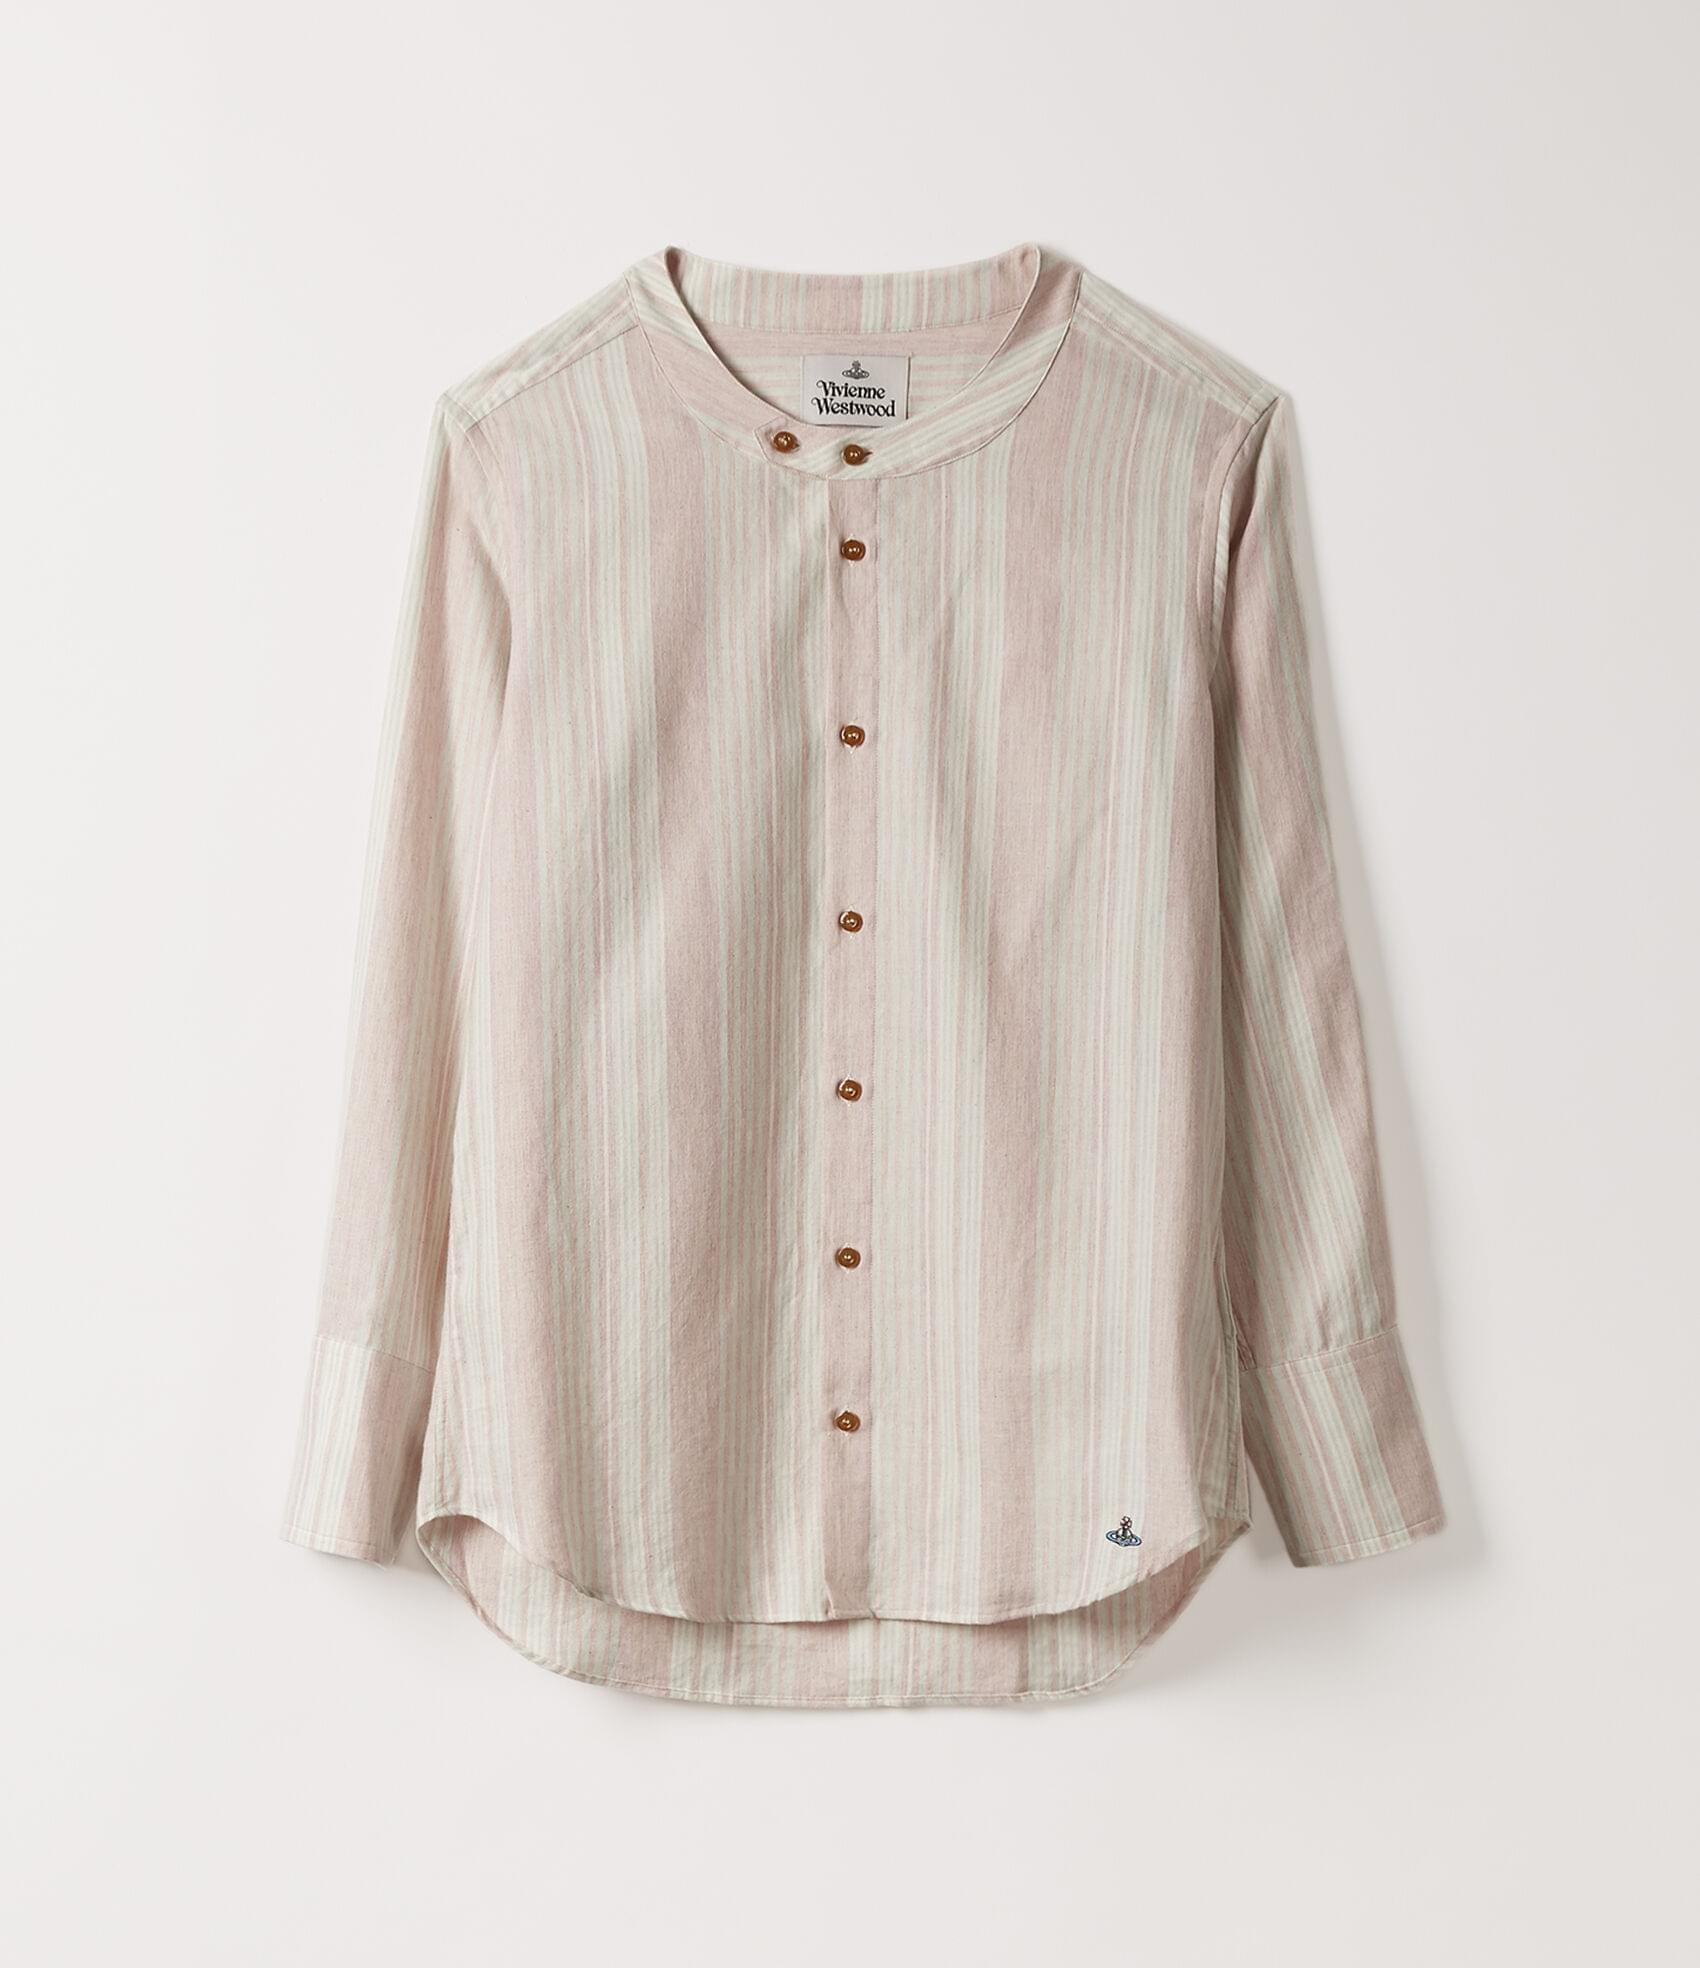 Vivienne Westwood LOW-NECK SHIRT NATURAL STRIPES